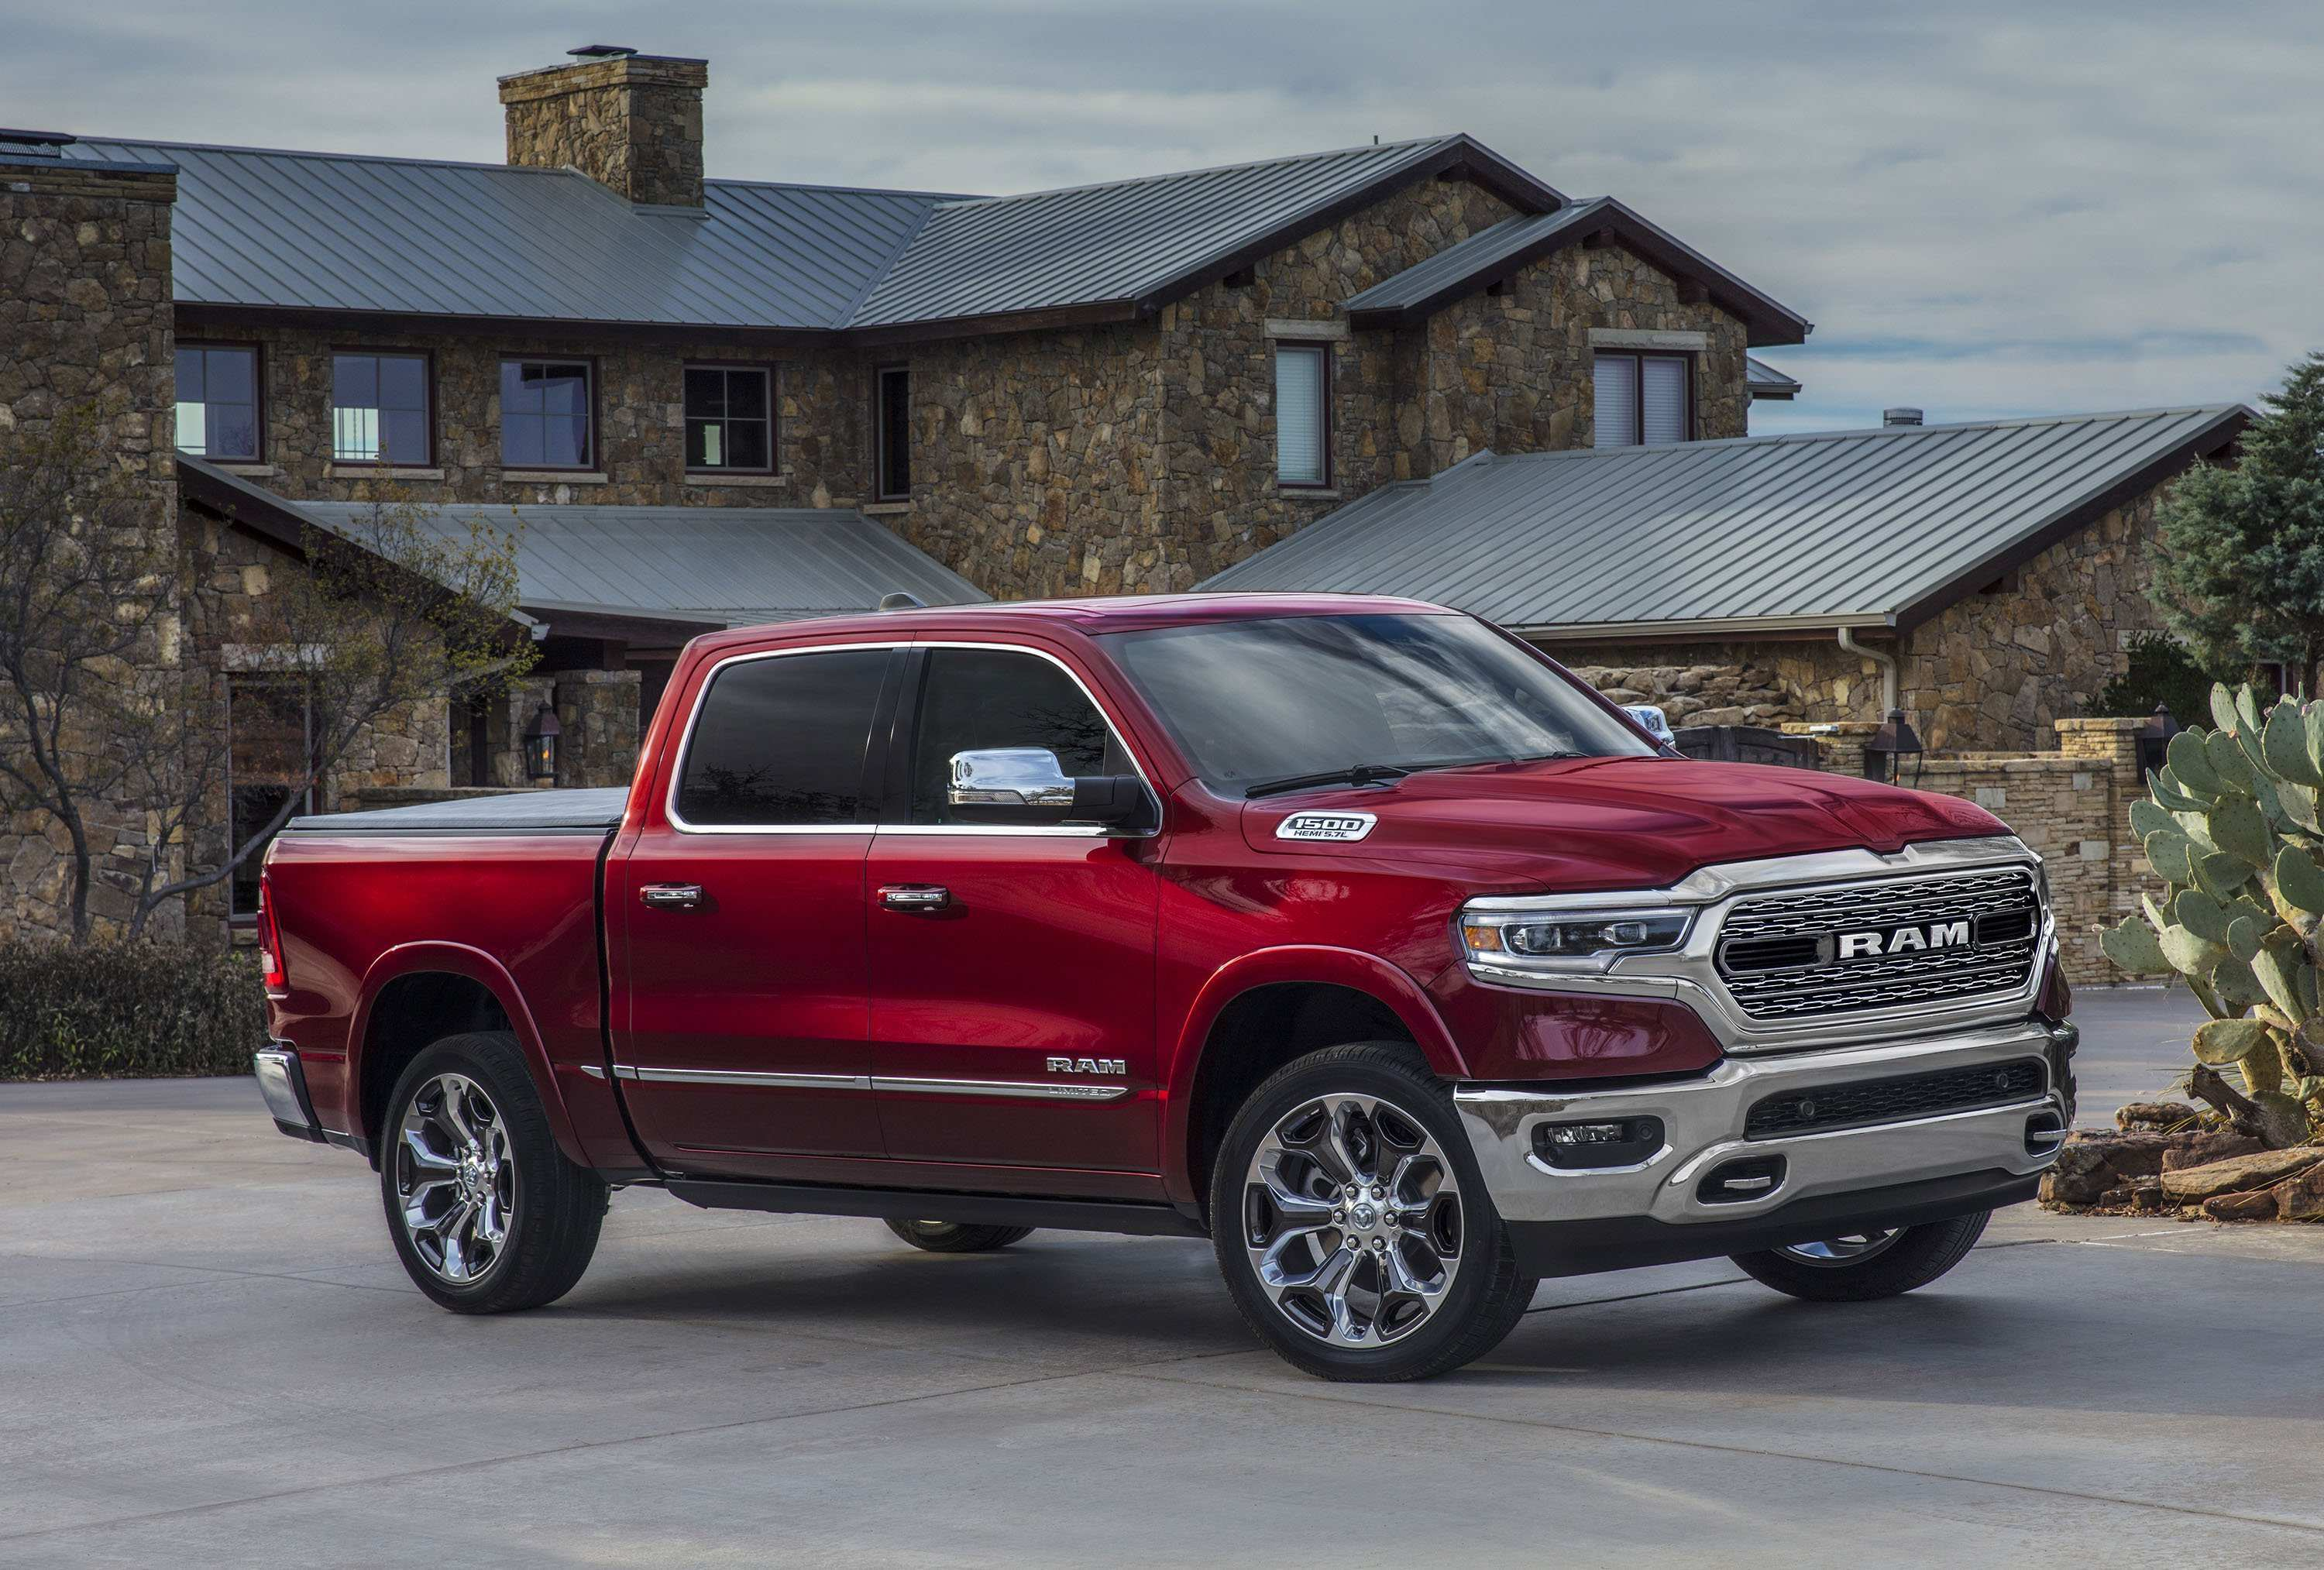 48 New Dodge T Rex 2020 Overview with Dodge T Rex 2020